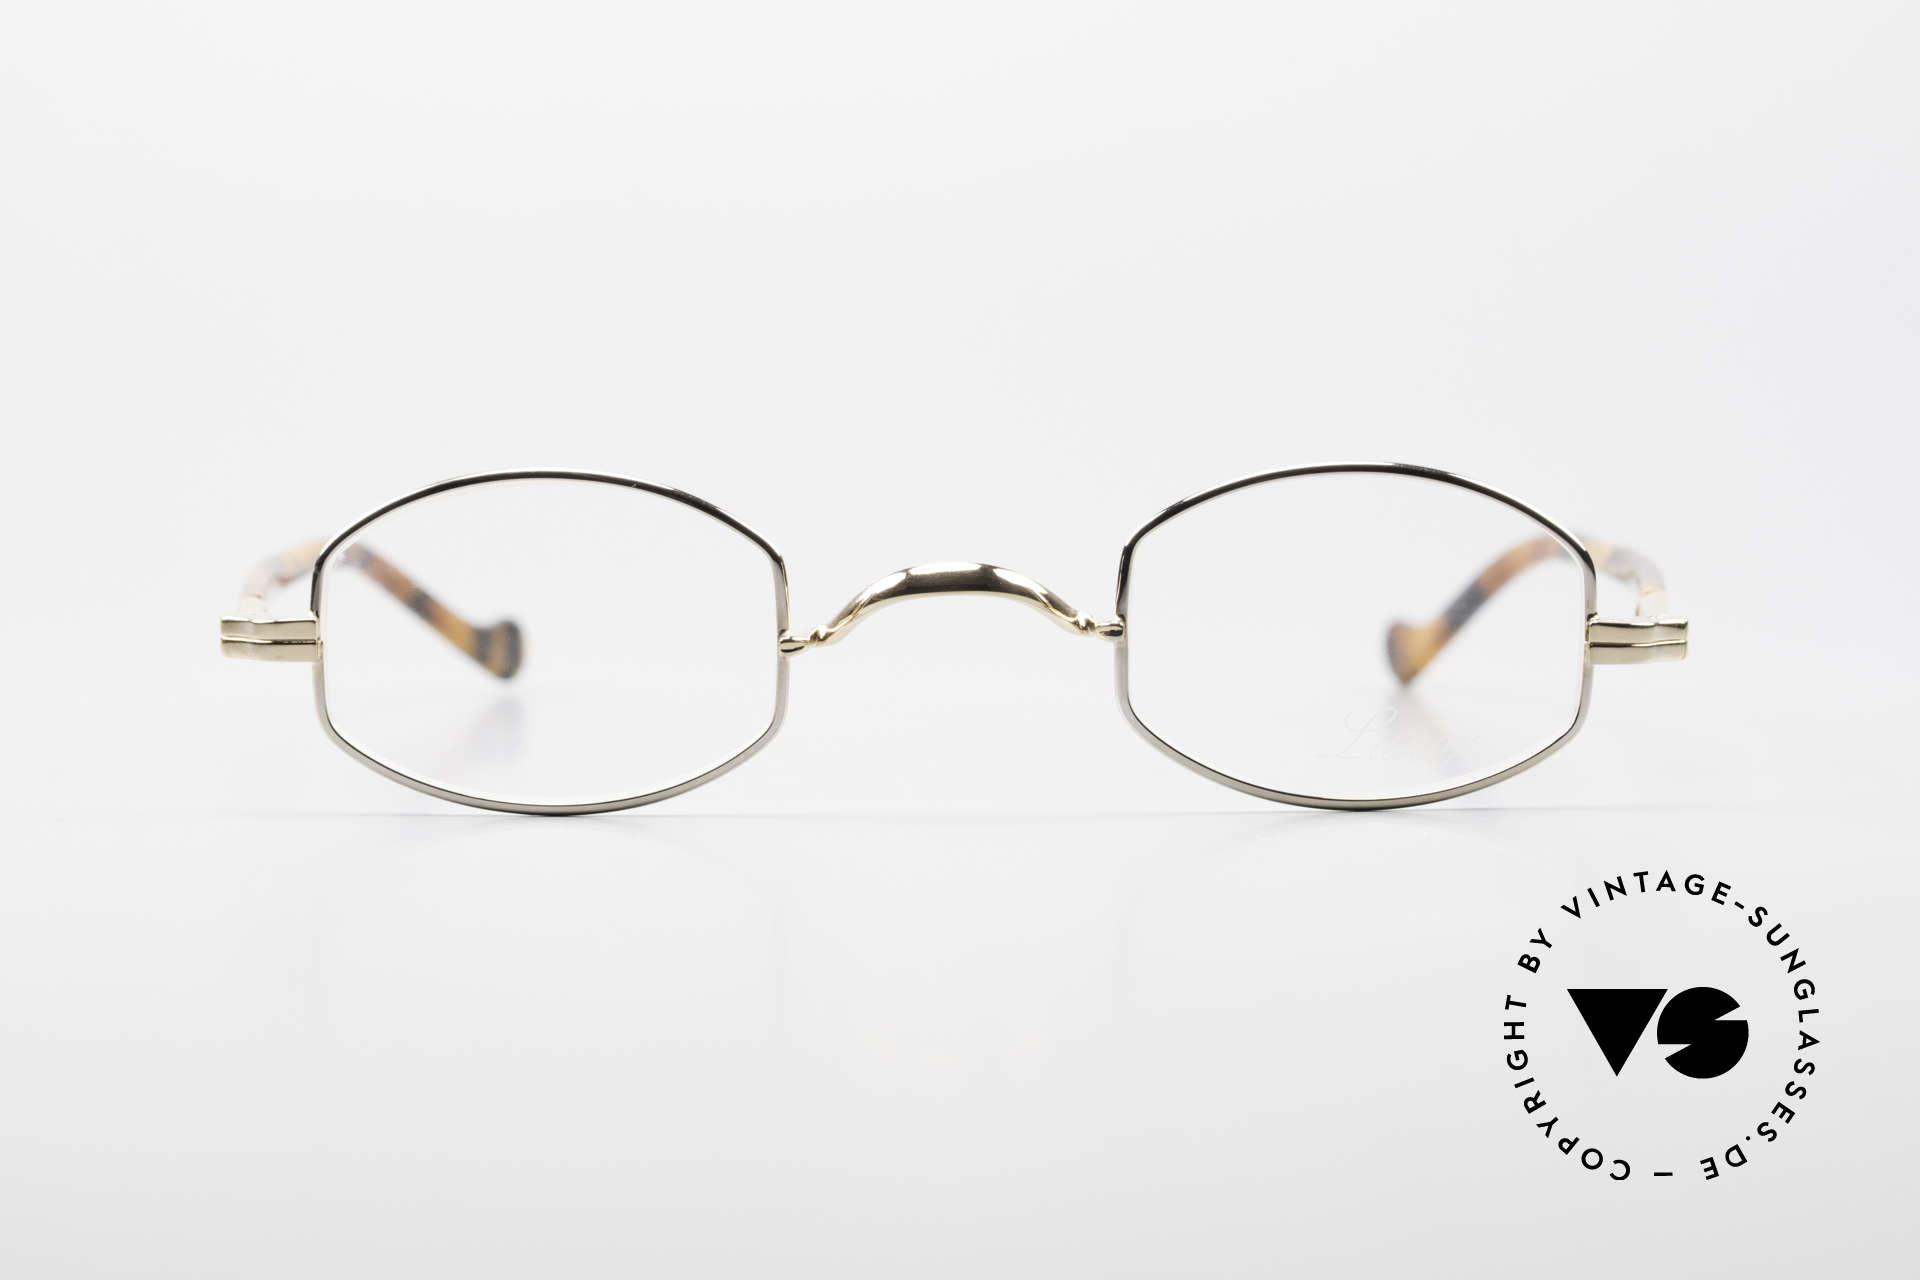 Lunor II A 02 Limited Edition BC Tortoise, BC: GOLD and Platinum PLATED with acetate temples, Made for Men and Women